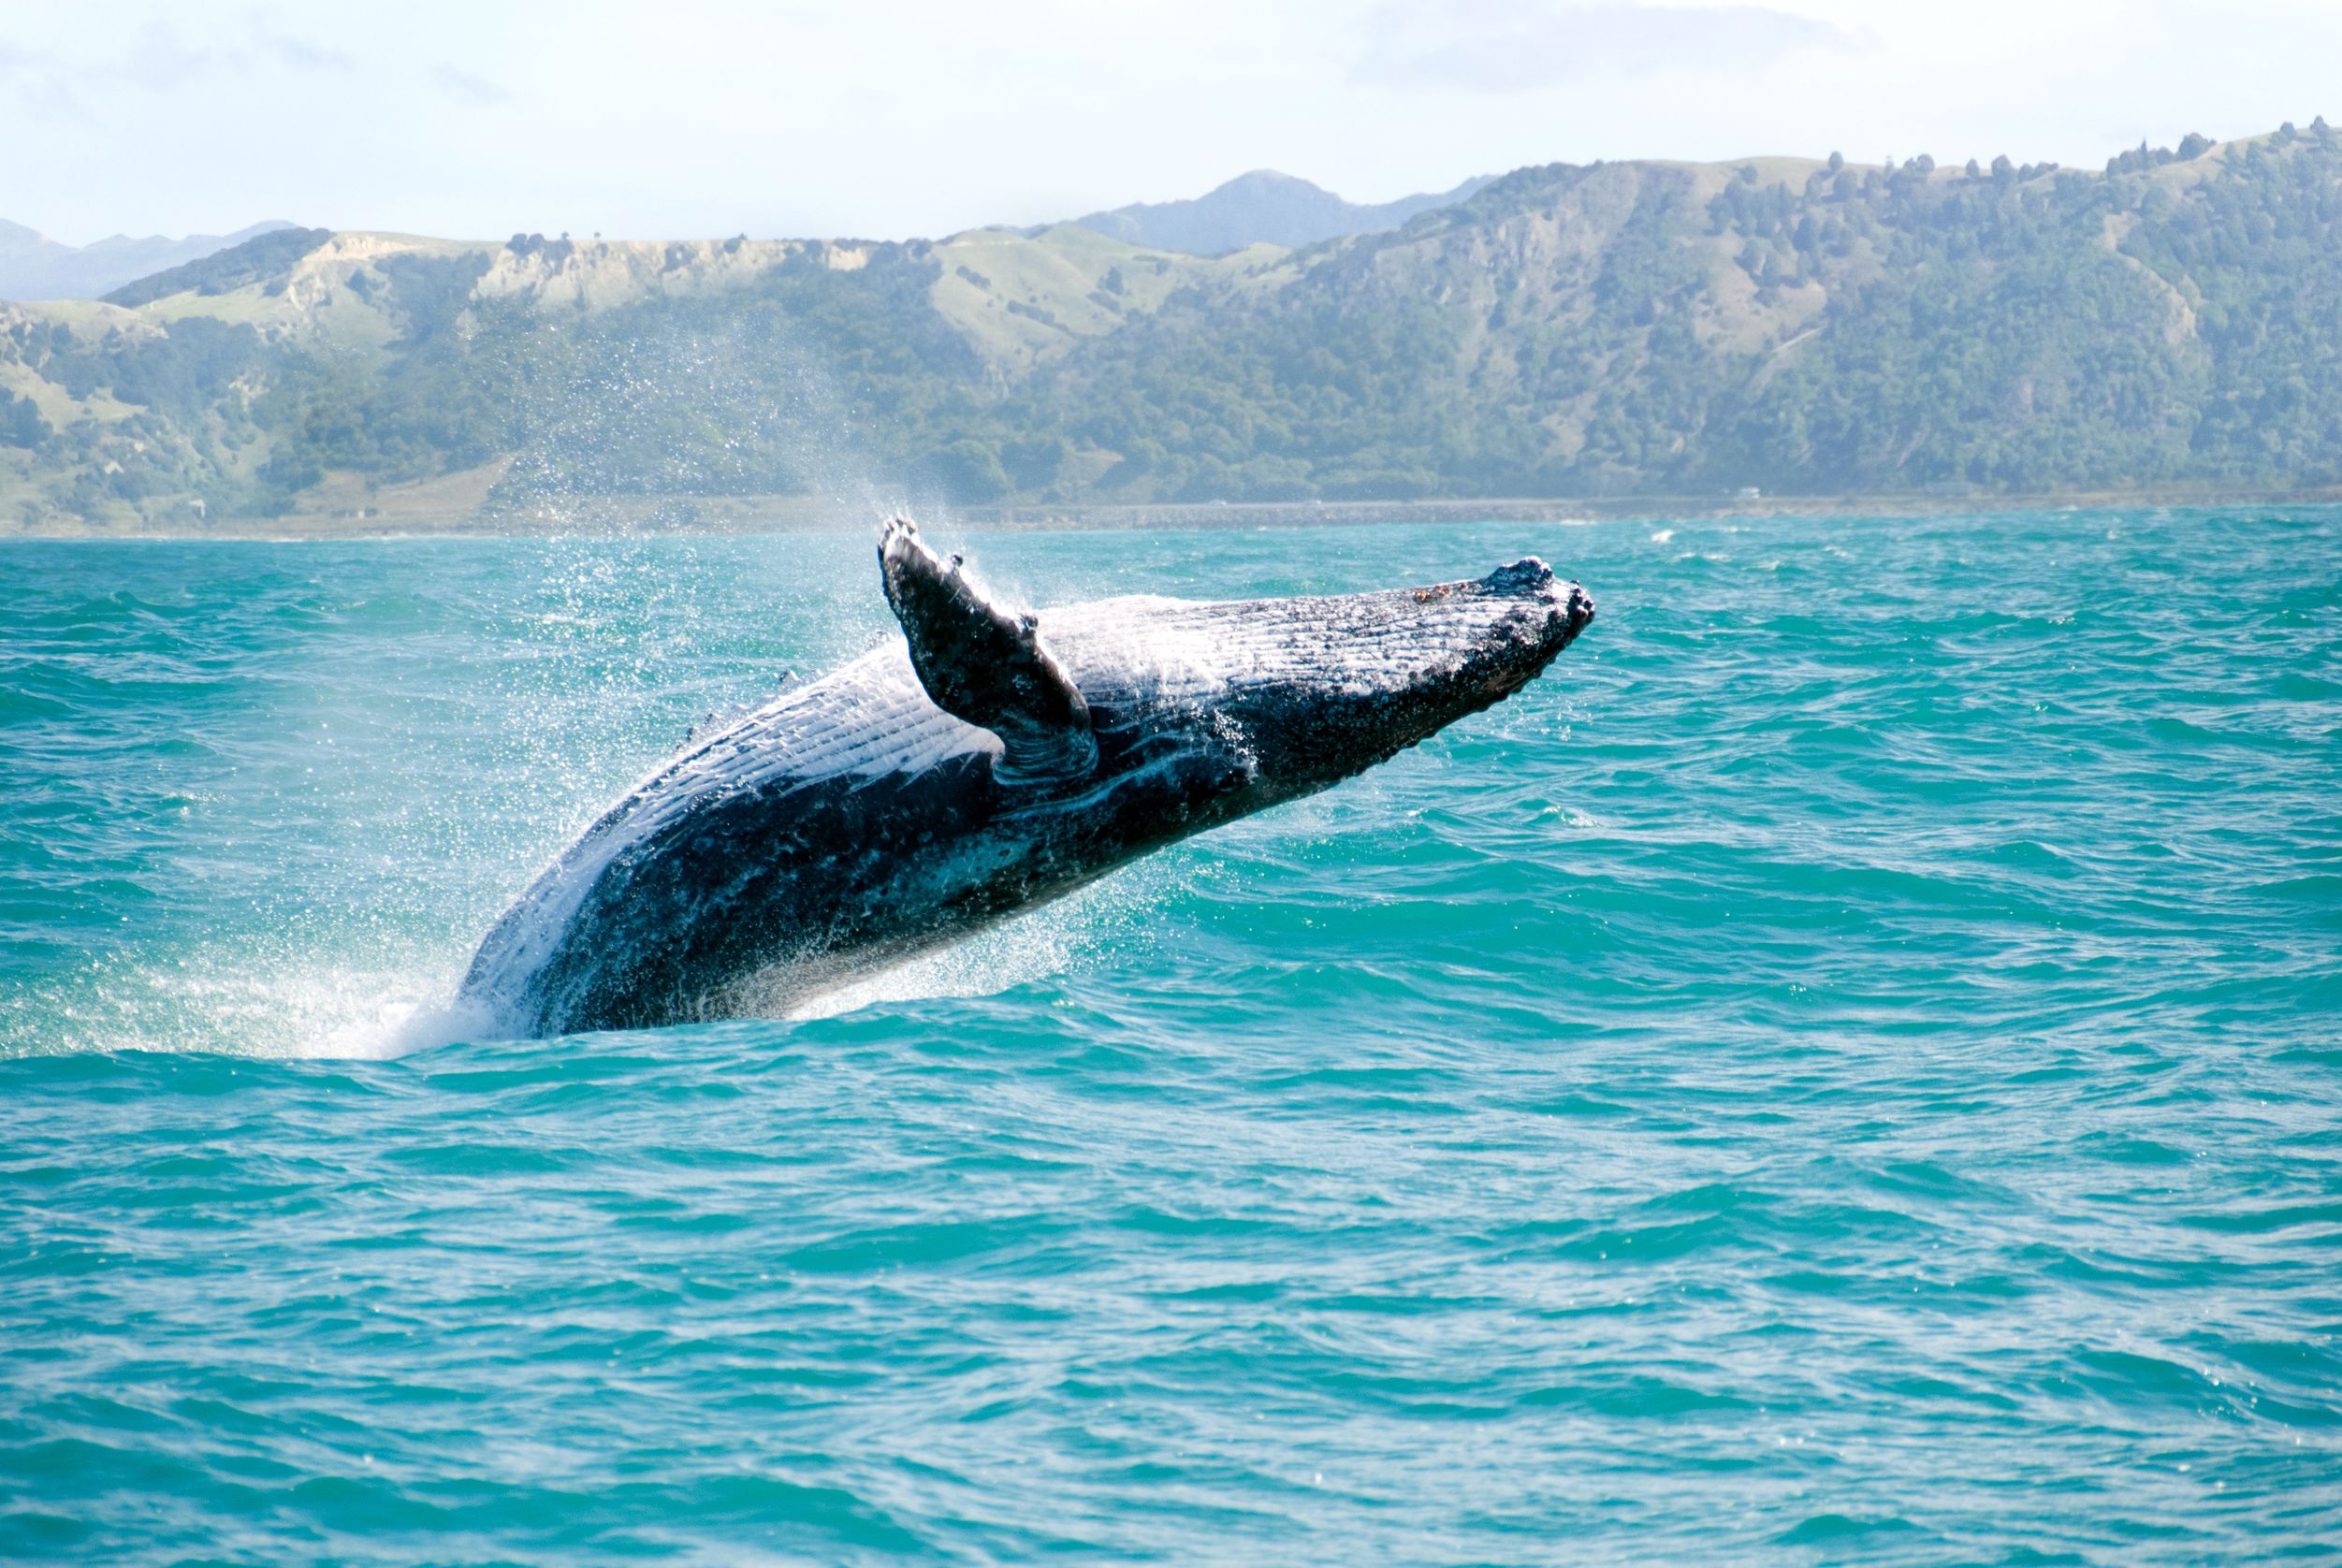 new acoustic mapping system can instantly find all whales in a